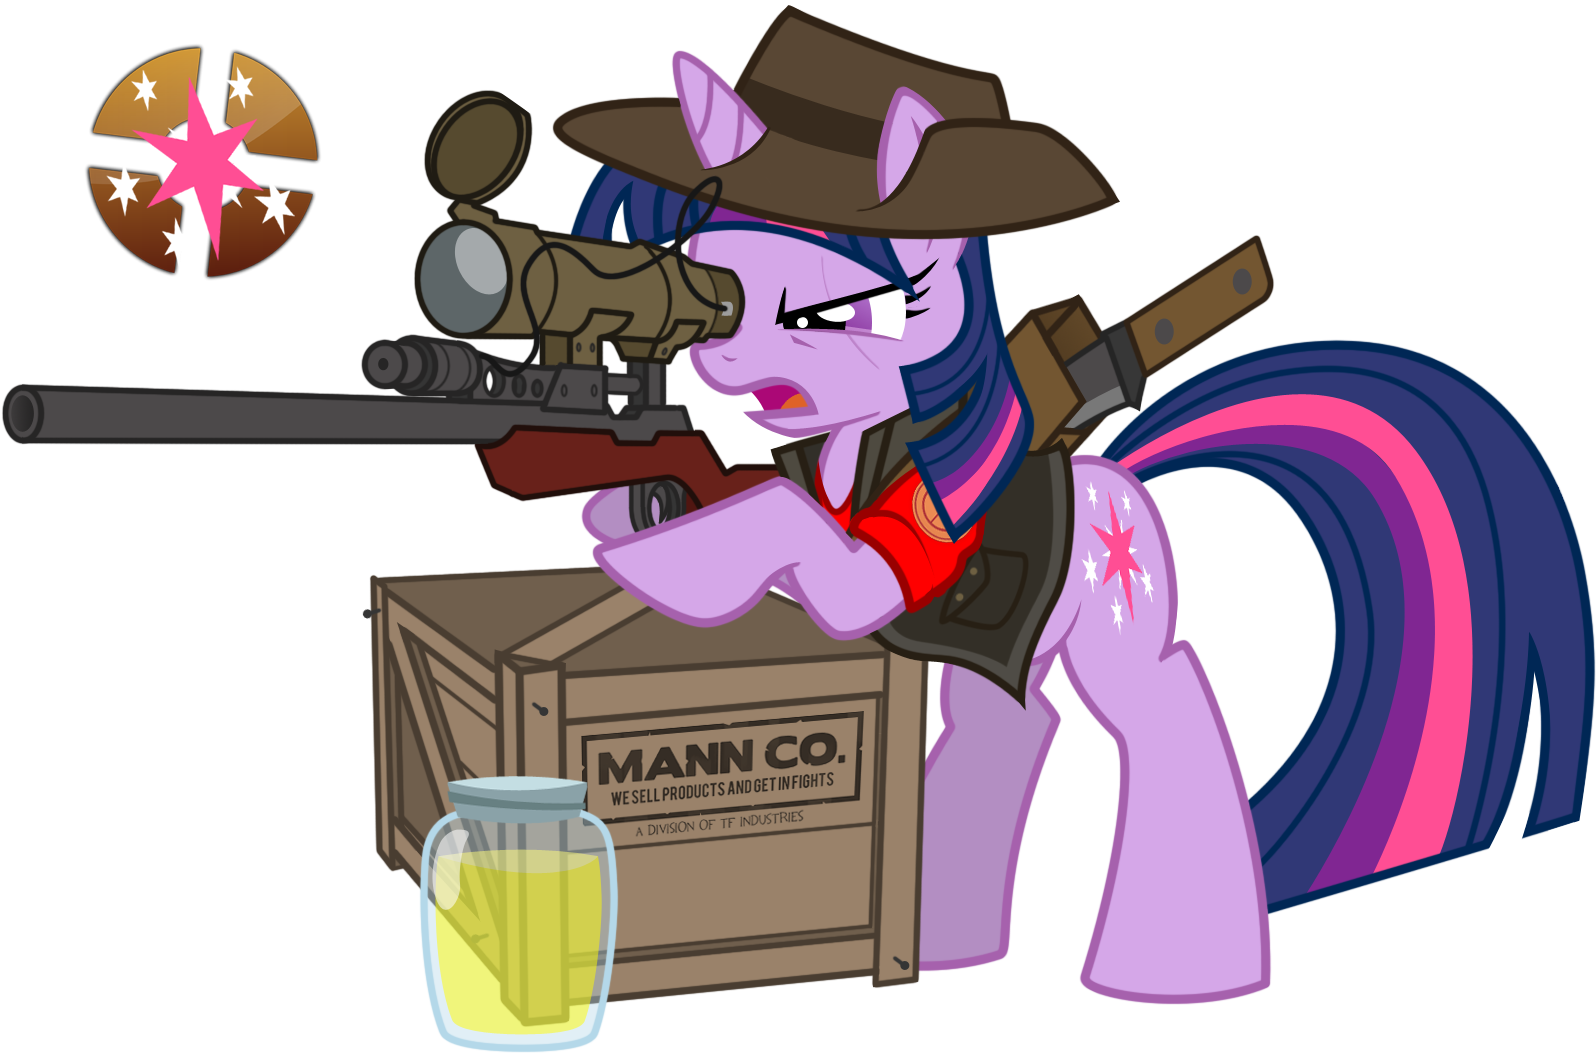 e621 box cosplay crossover cutie_mark equine female feral friendship_is_magic fur gun hair hat horn jar jarate knife mammal multicolored_hair my_little_pony purple_fur purple_hair ranged_weapon rifle sniper sniper_(team_fortress_2) sniper_rifle team_fortress_2 twilight_sparkle_(mlp) two_tone_hair unicorn unknown_artist valve video_games weapon